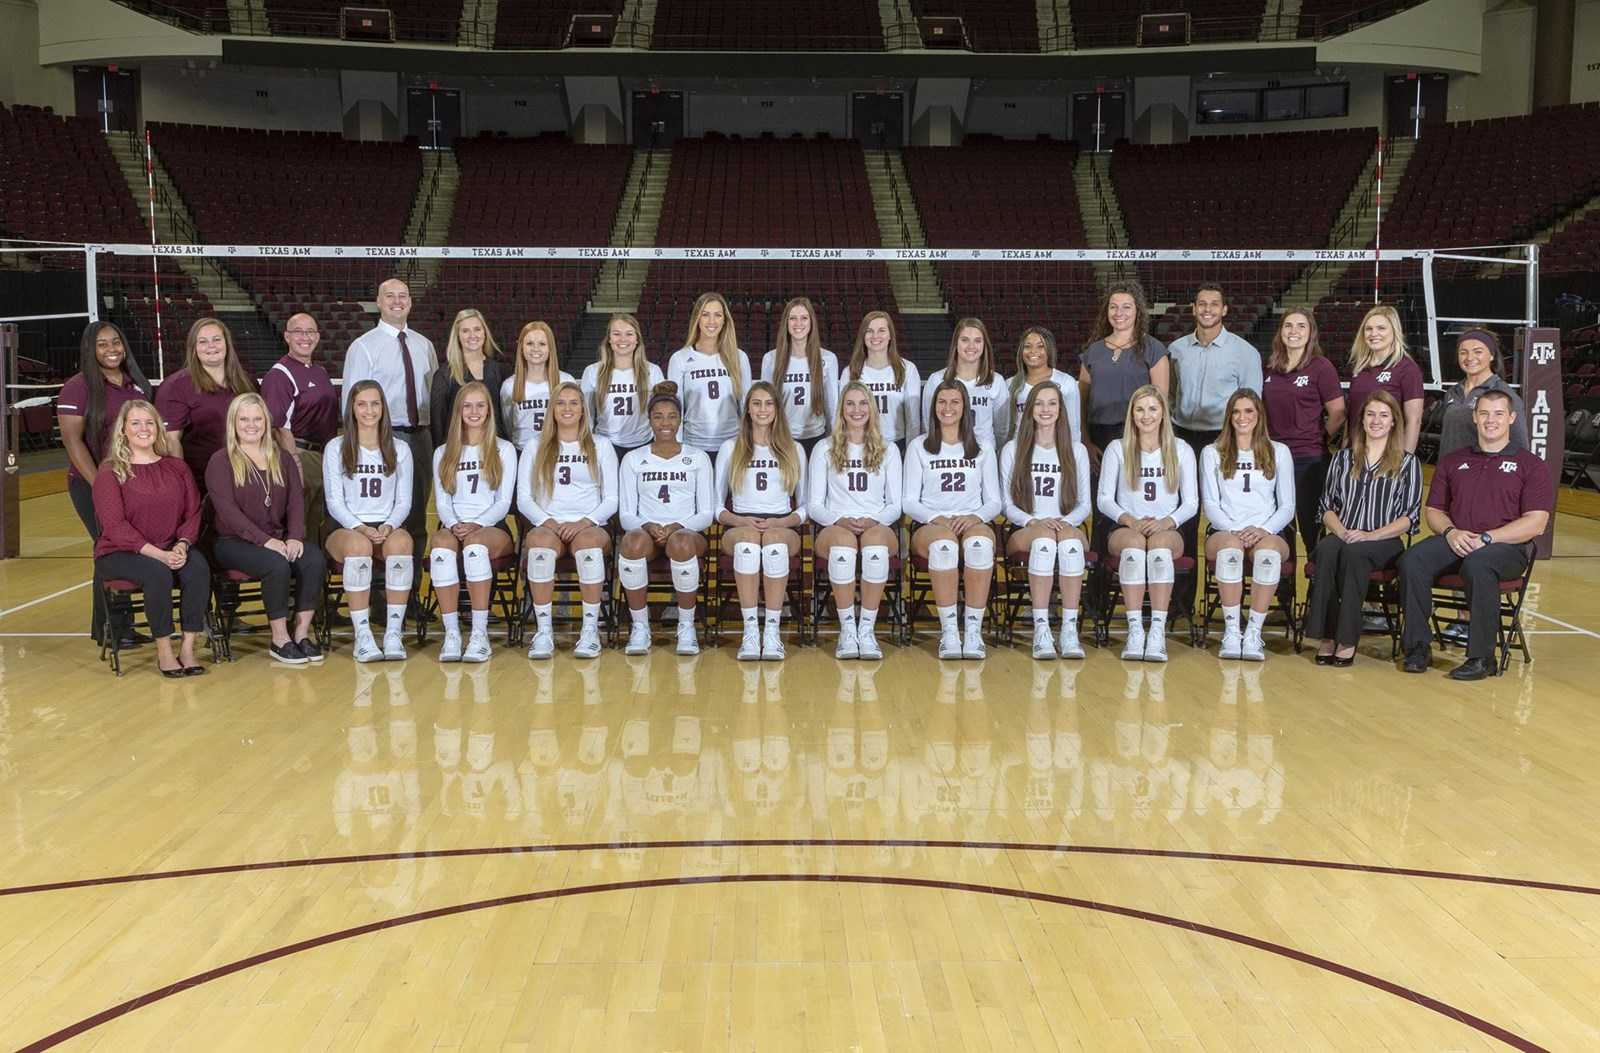 2018 Volleyball Roster Texas A M Athletics Home Of The 12th Man